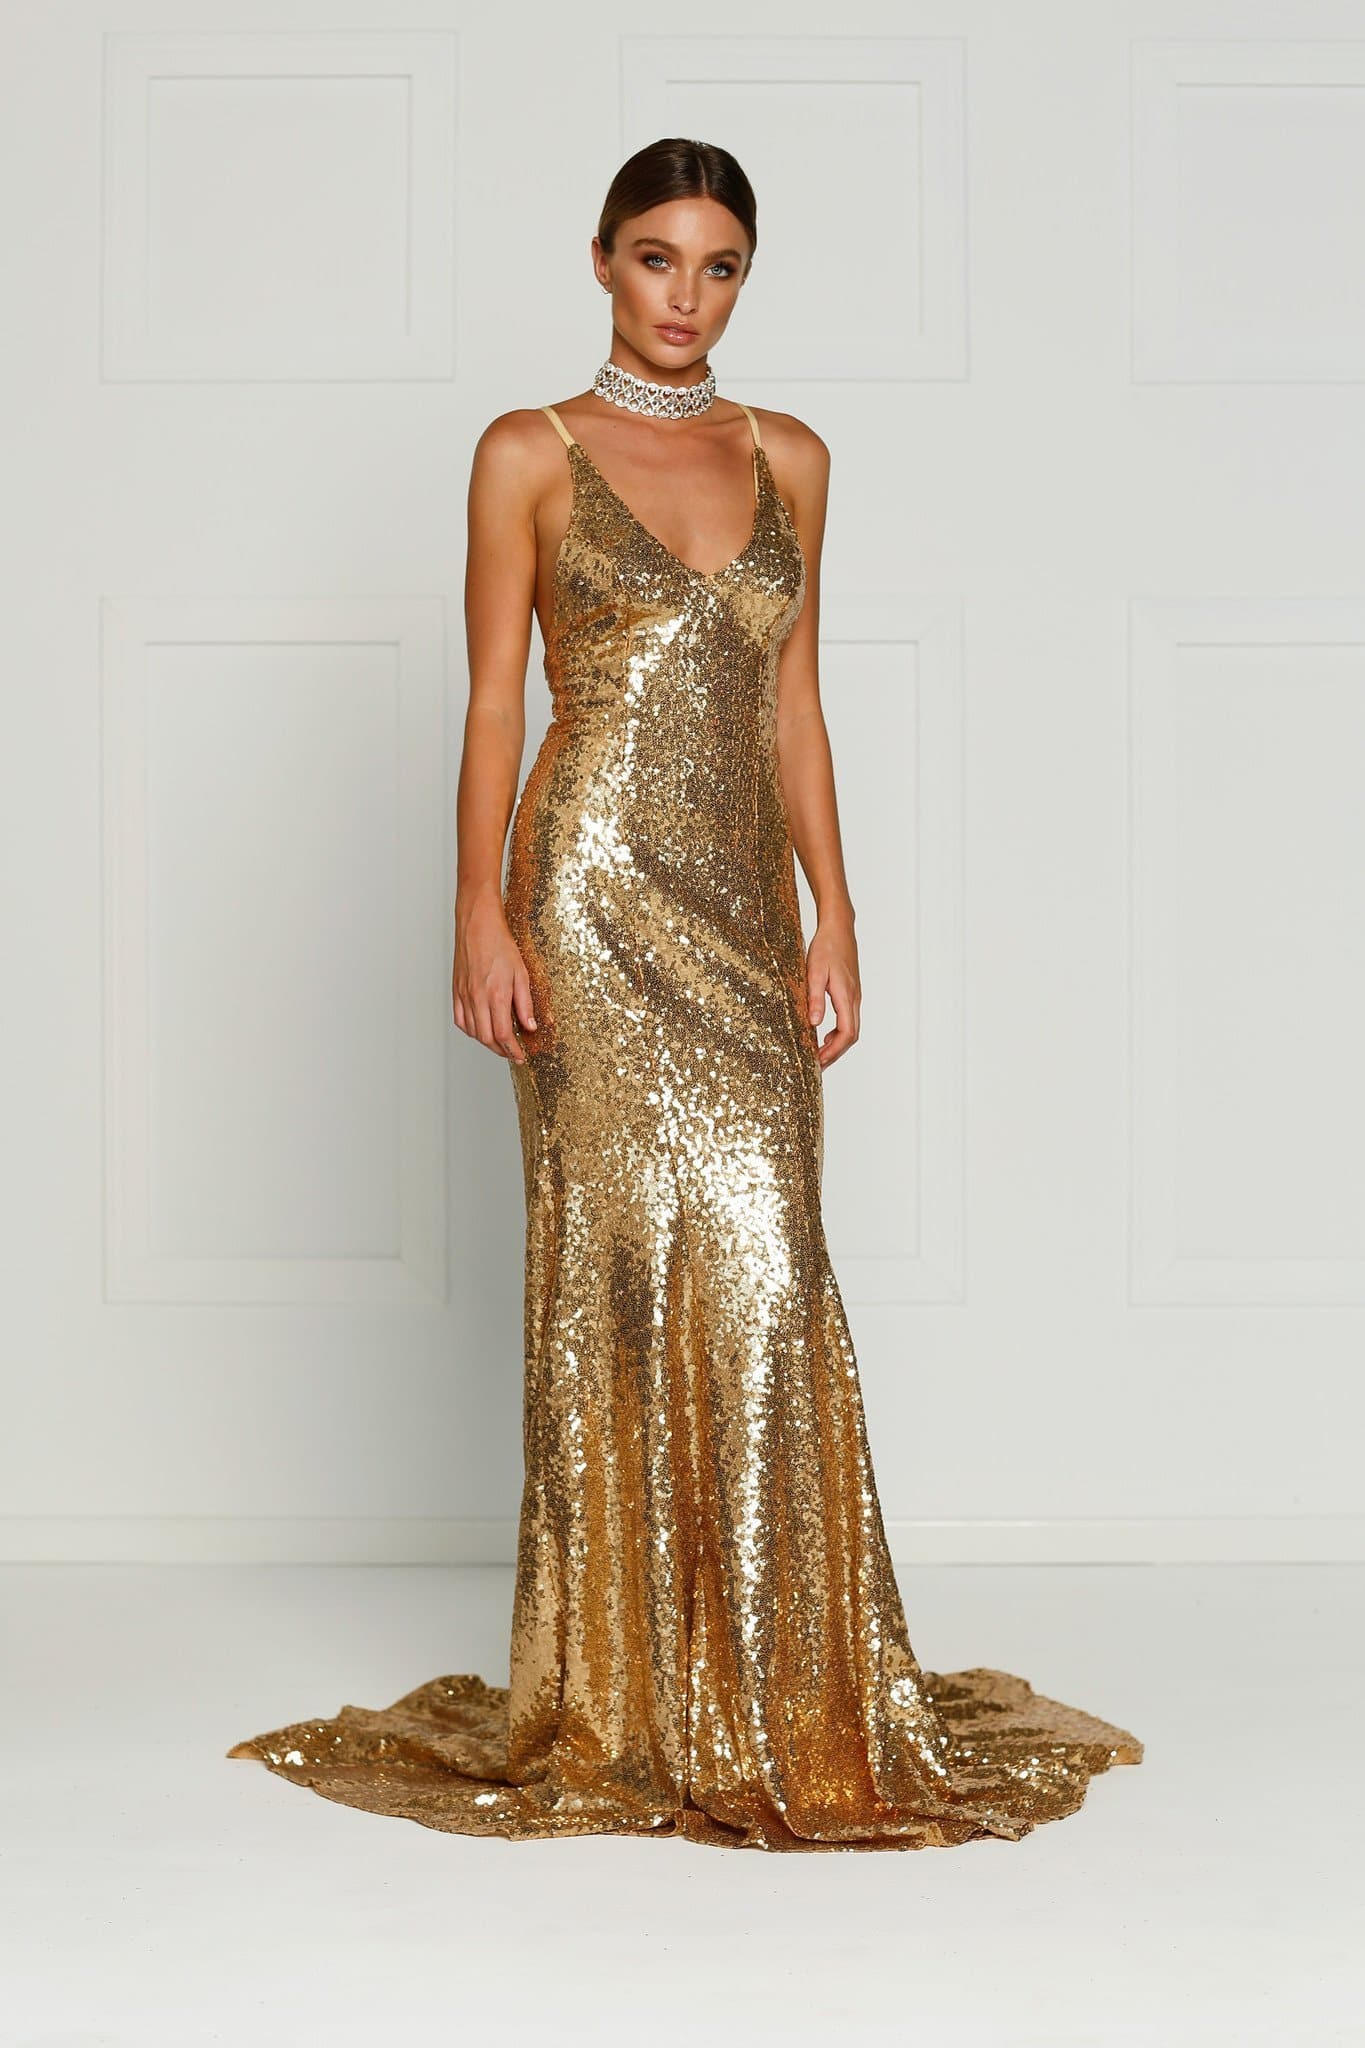 Kendall Formal Dress - Liquid Gold Sequins V Neck Tie Back Full Length Gown